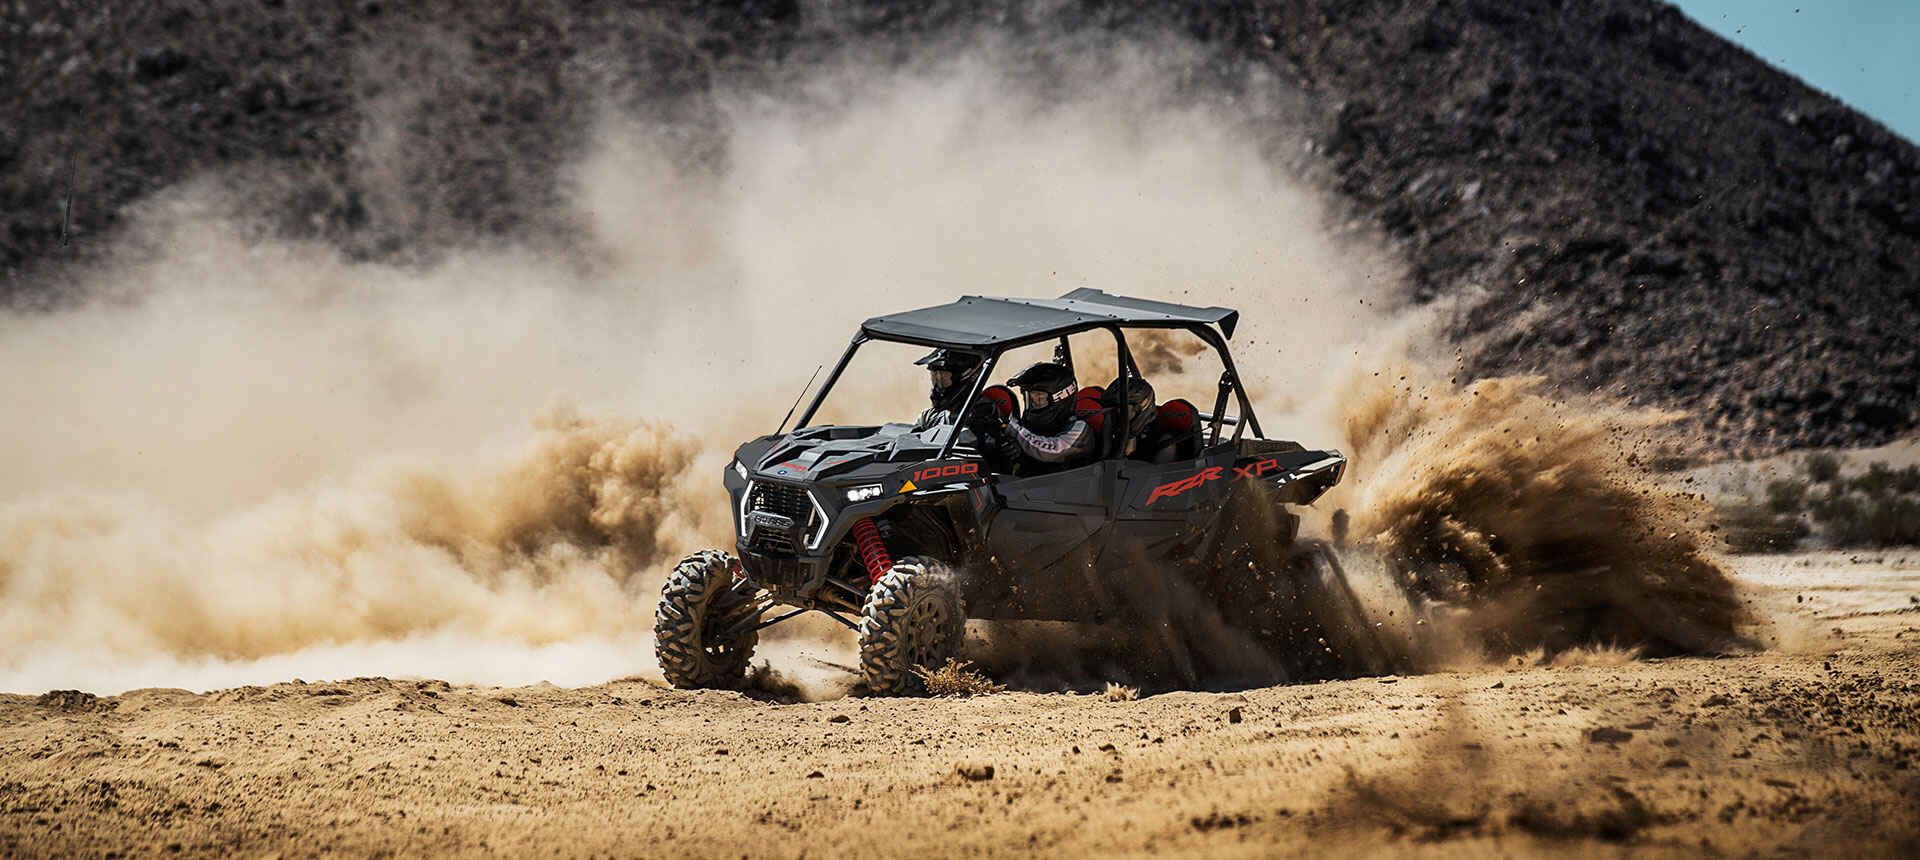 2020 RZR® XP 4 1000 Limited Edition Instagram image 4